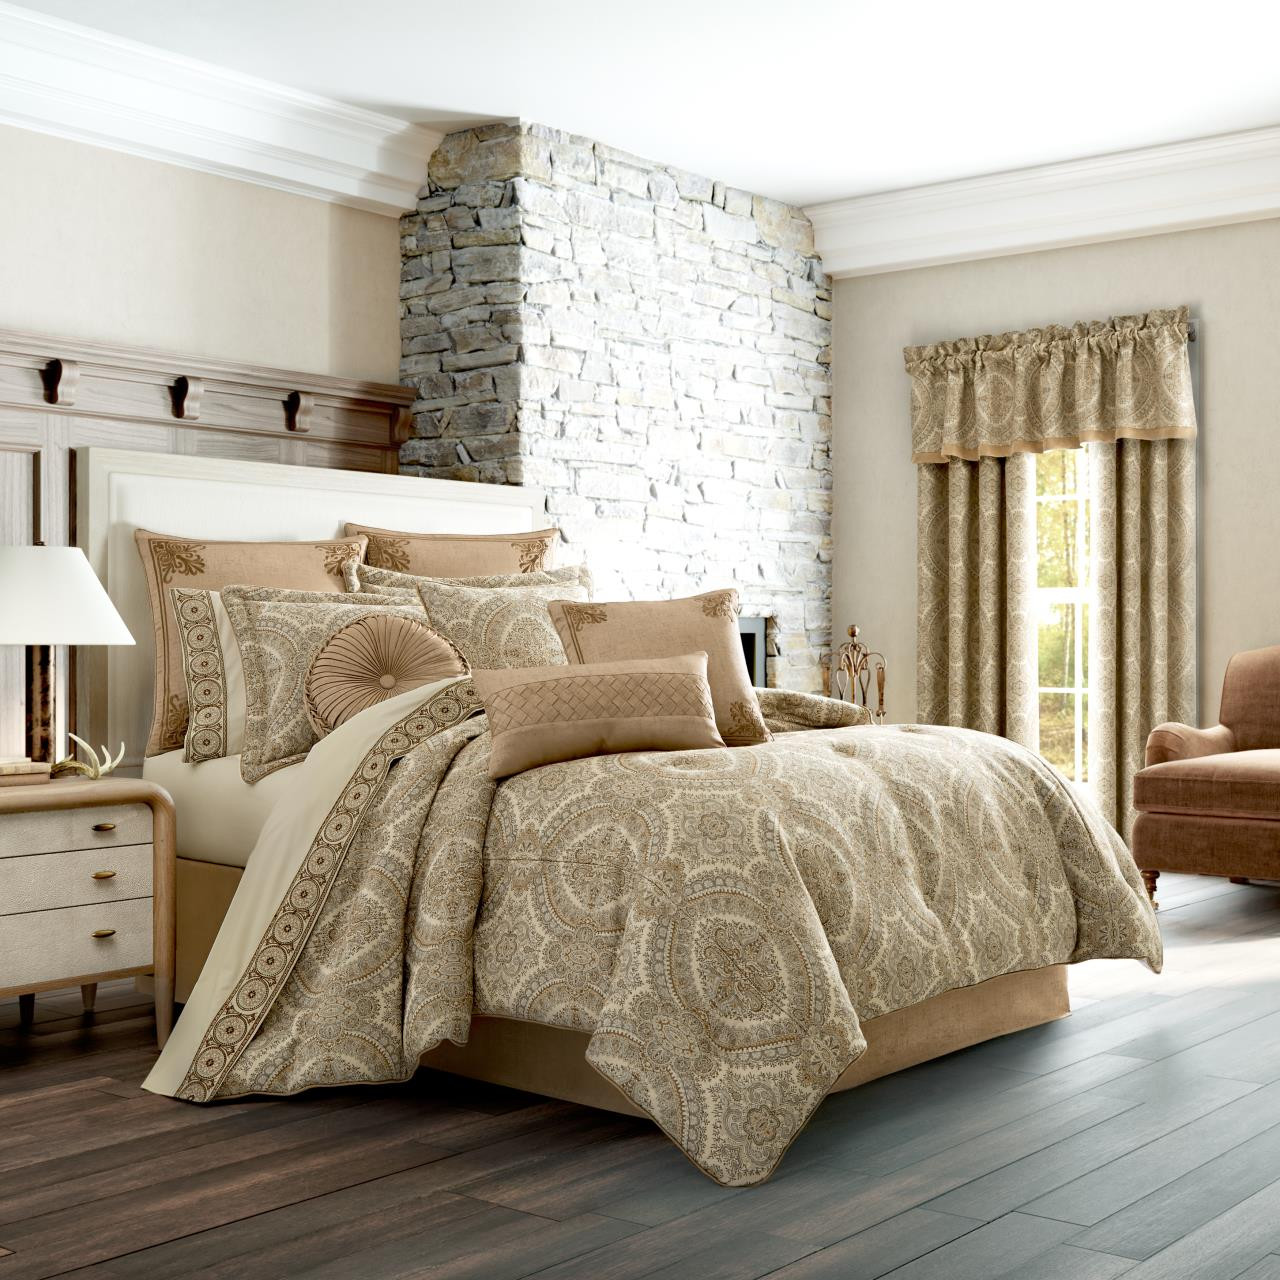 Sardinia Gold Comforter Set By J Queen New York Paul S Home Fashions